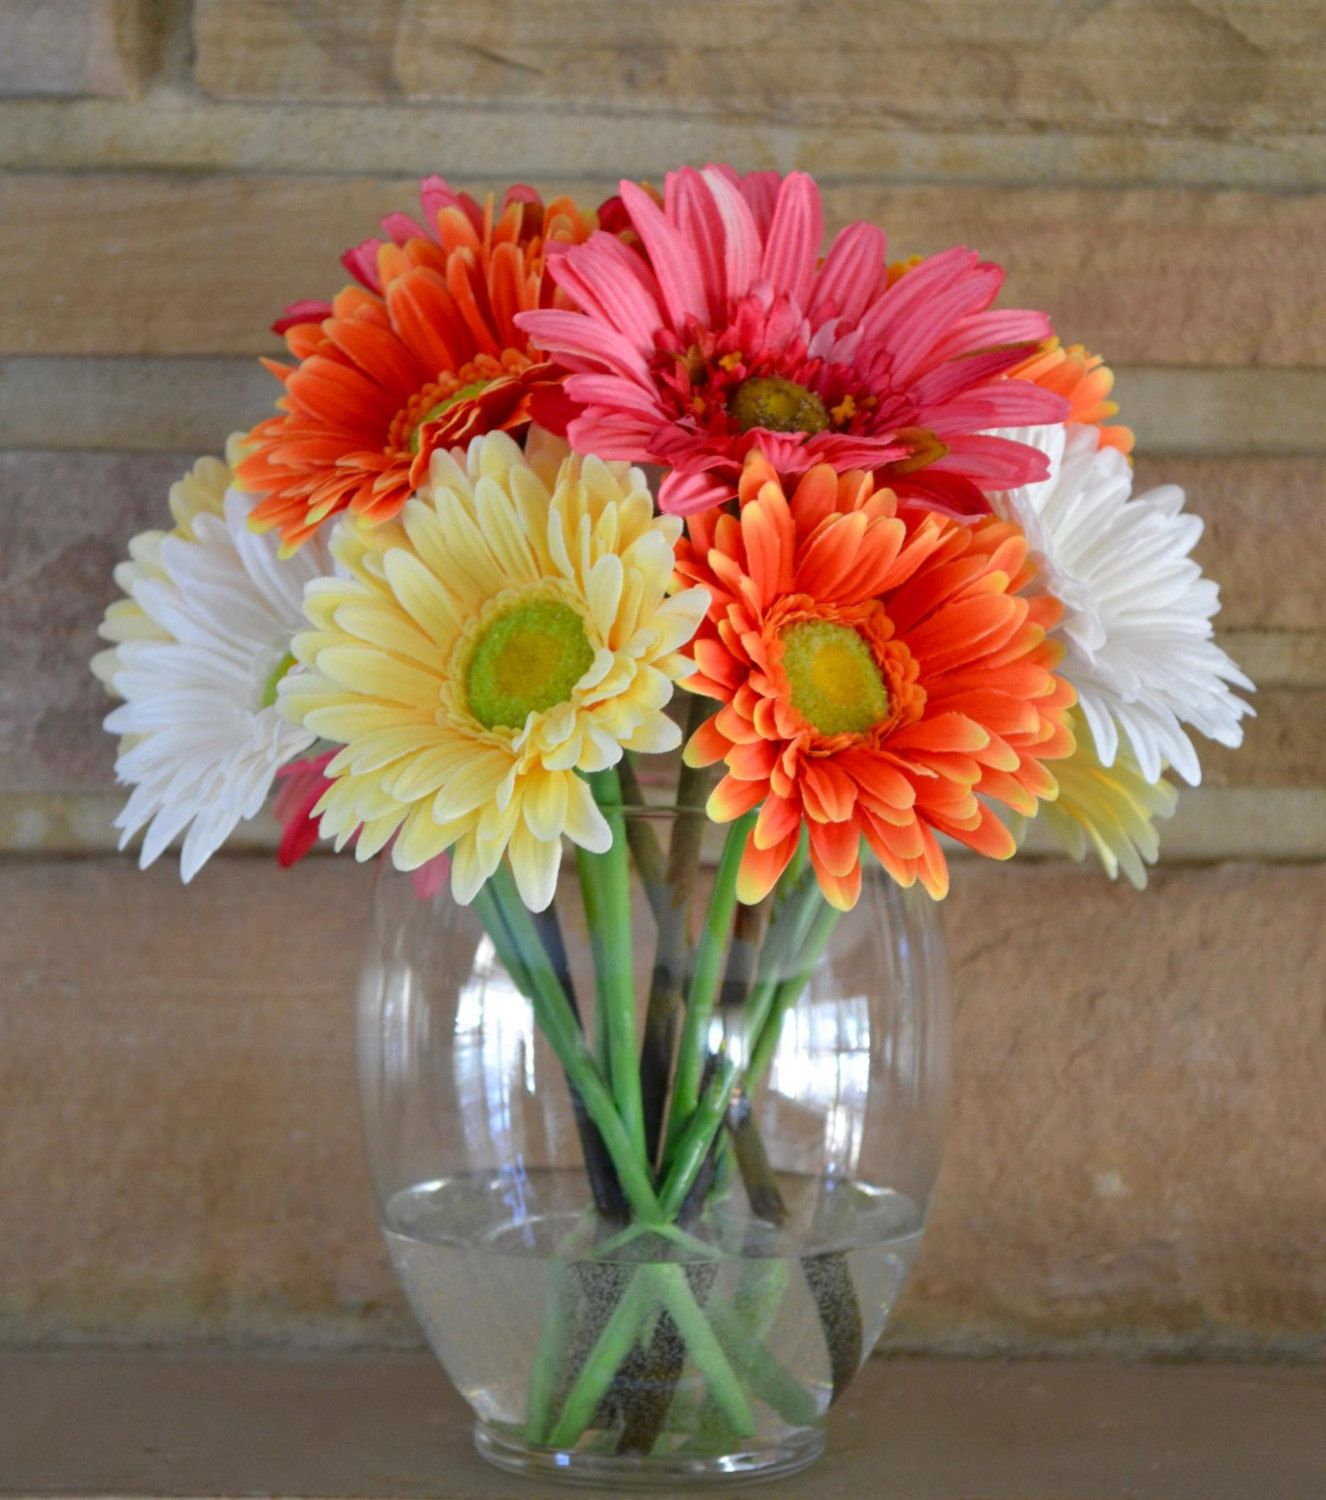 Gerbera Daisy Flower Arrangement In Glass Vase Faux Water